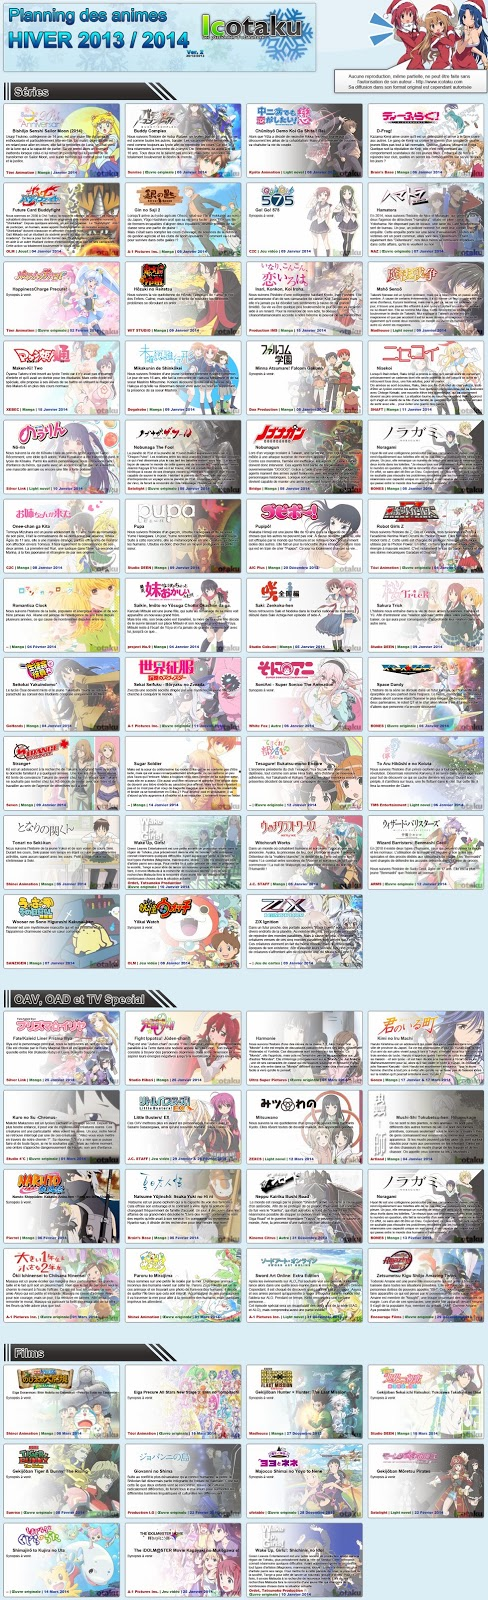 http://forum.icotaku.com/images/forum/plannings/hiver2014/winter13-14_plan.jpg